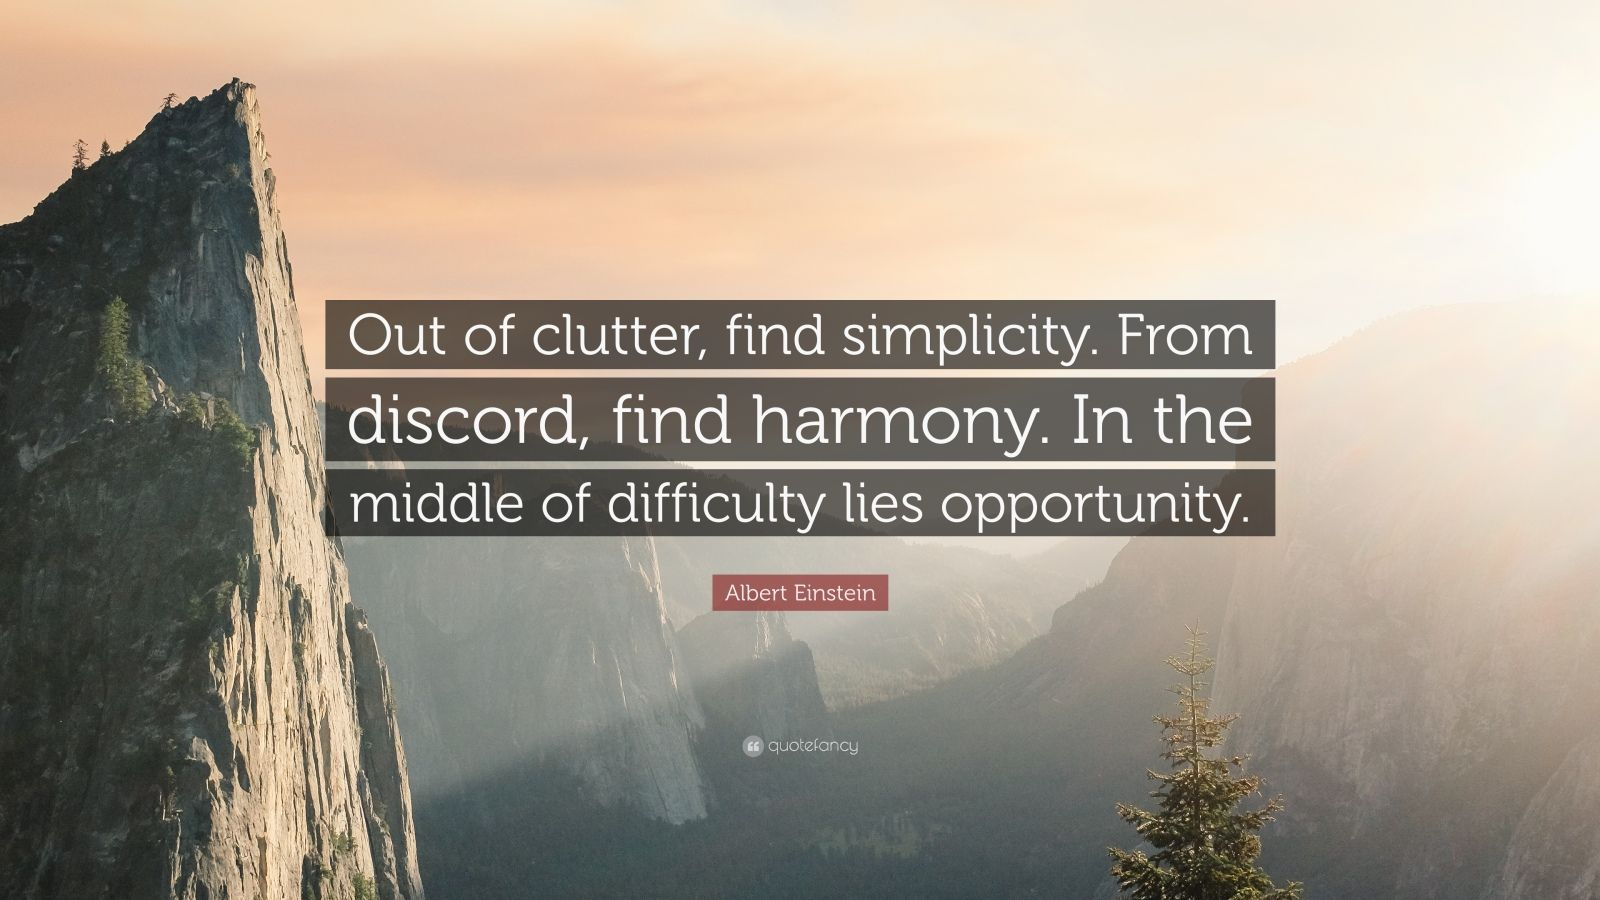 """Albert Einstein Quote: """"Out of clutter, find simplicity. From discord, find harmony. In the middle of difficulty lies opportunity."""""""